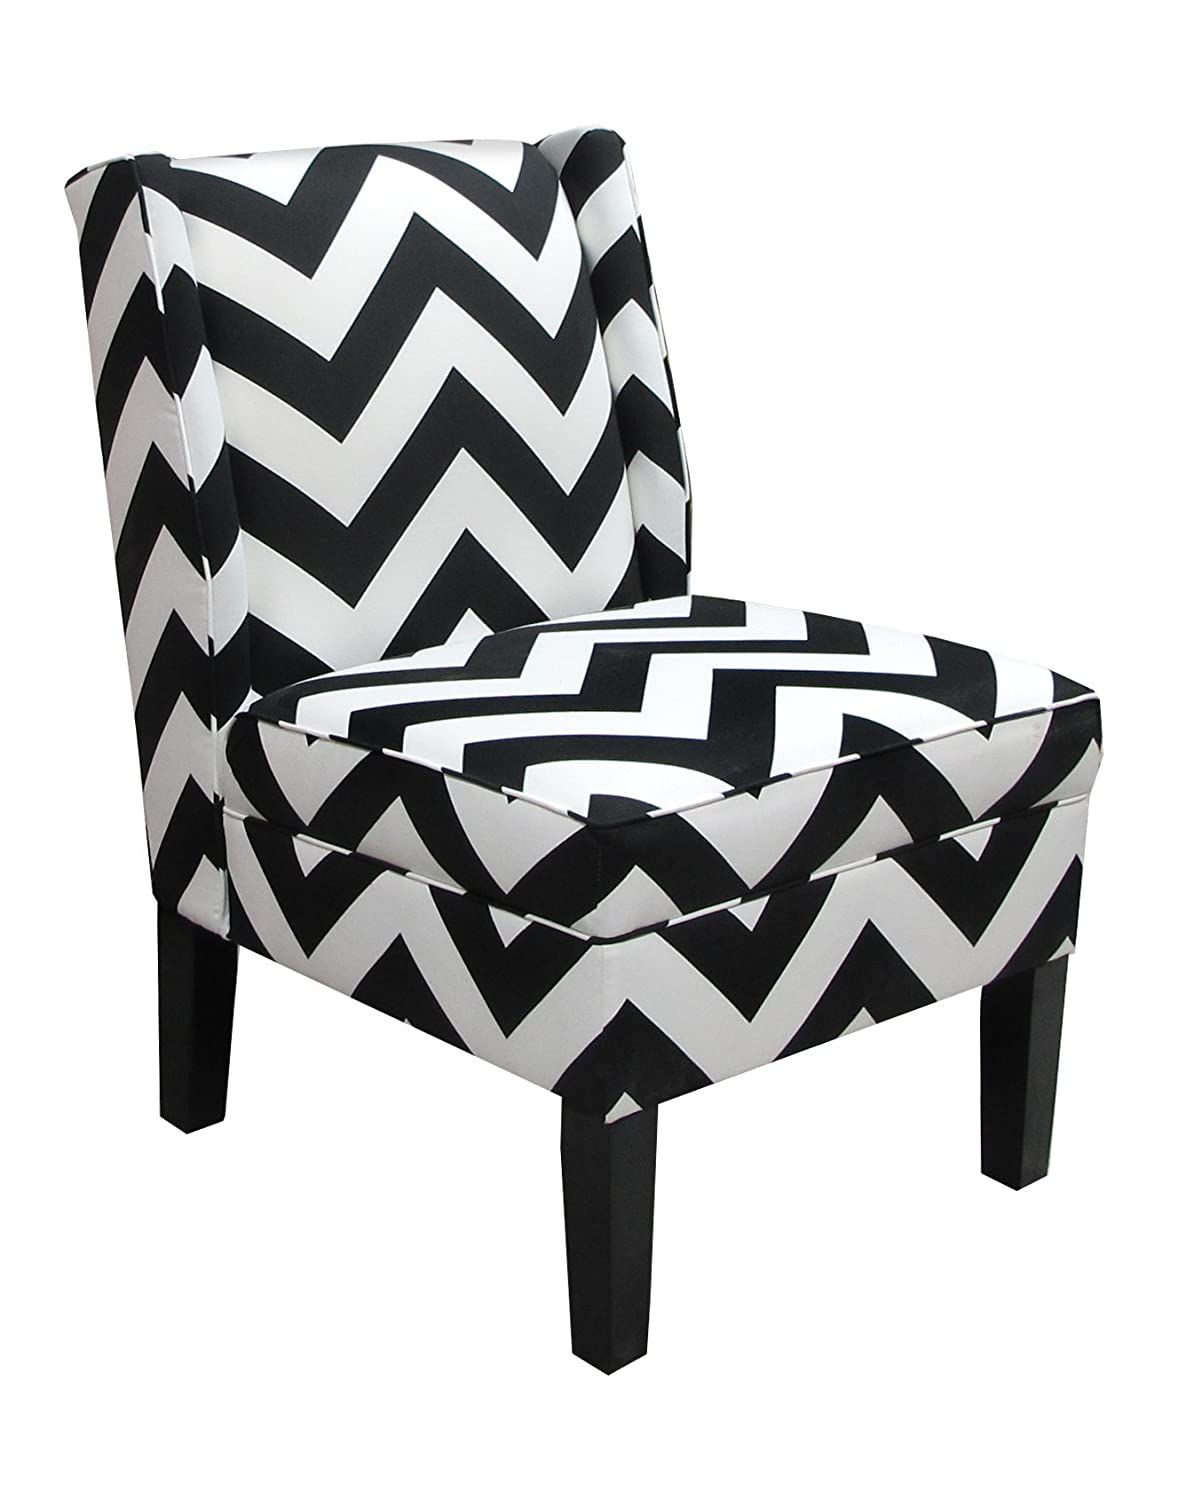 Charmant Amazon.com: Skyline Furniture Wingback Chair In Zig Zag Black And White:  Kitchen U0026 Dining